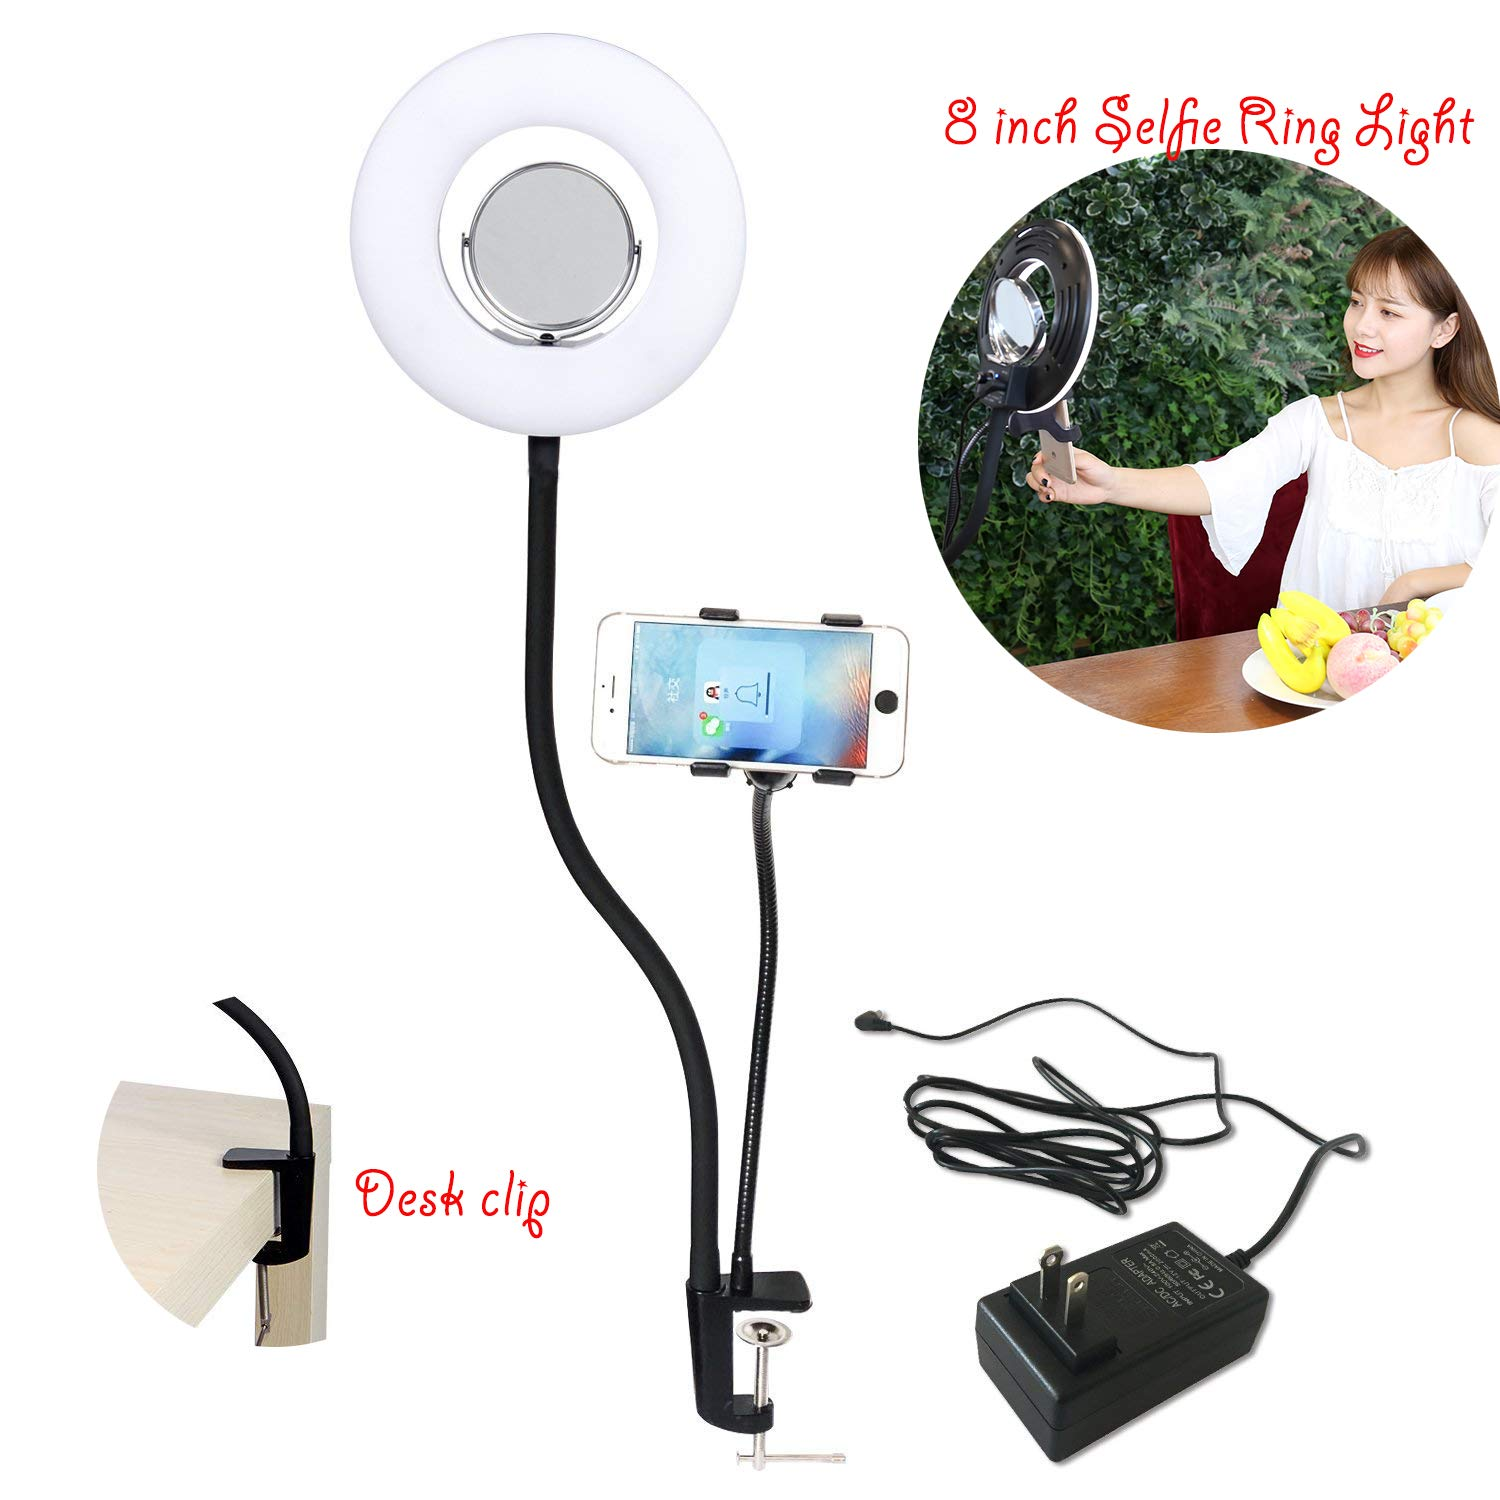 8-inch 24W Selfie Ring Light with Cell Phone Holder and Makeup Mirror for Makeup YouTube Video Live Stream 5500K Dimmable Clamp-on Light,with Lazy Bracket Flexible Arms Compatible with iPhone Android by TRUMAGINE